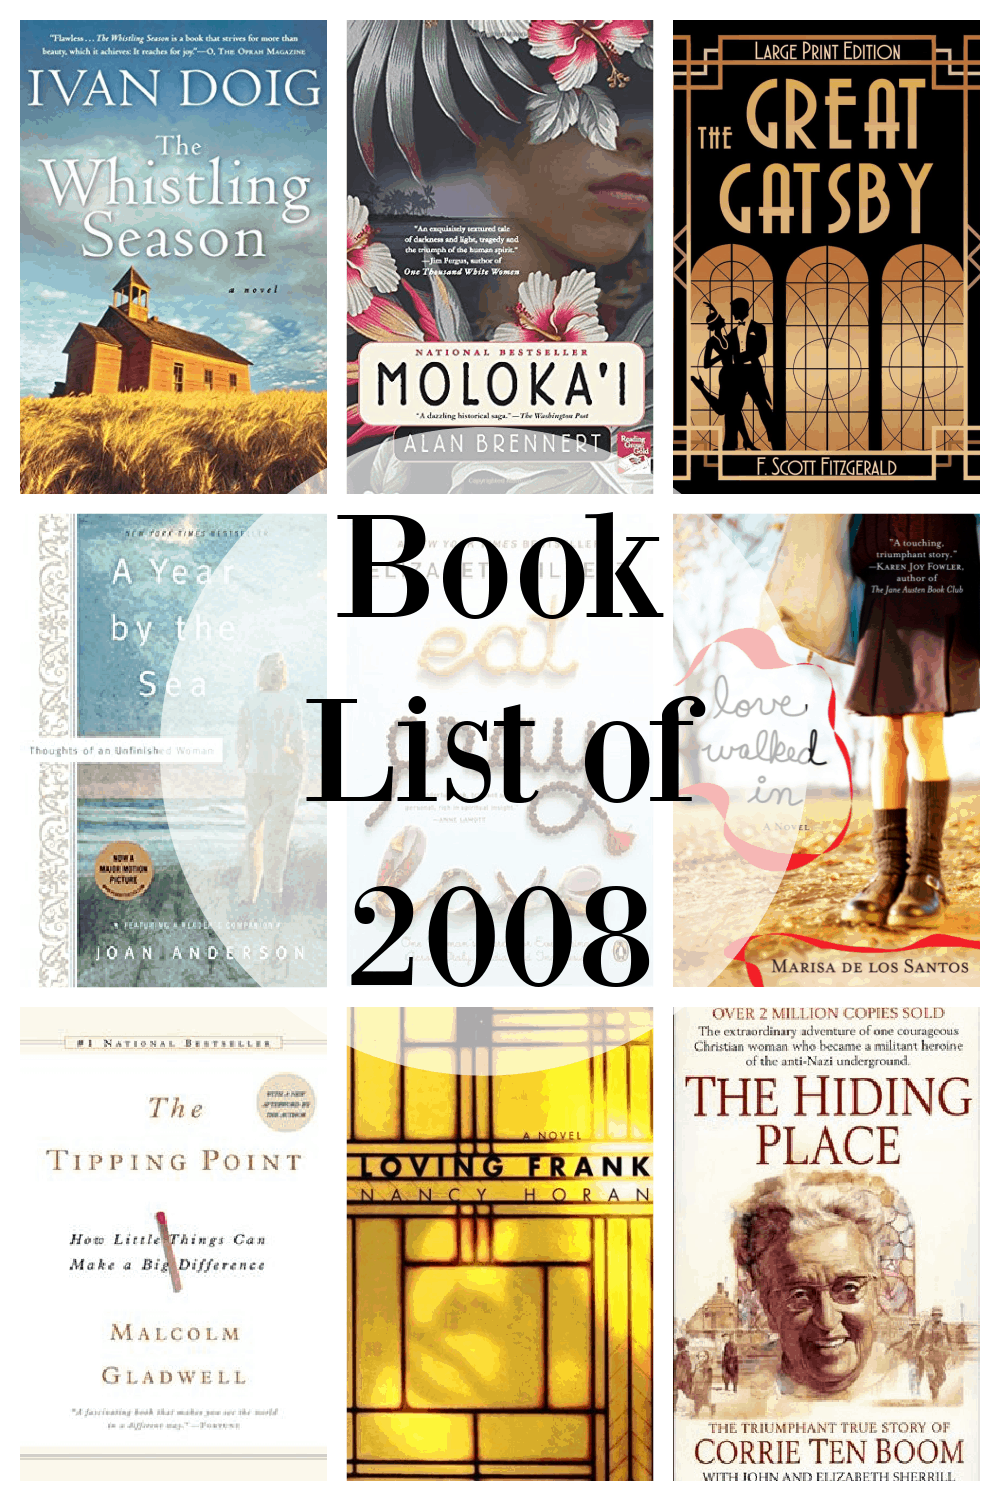 book list of 2008